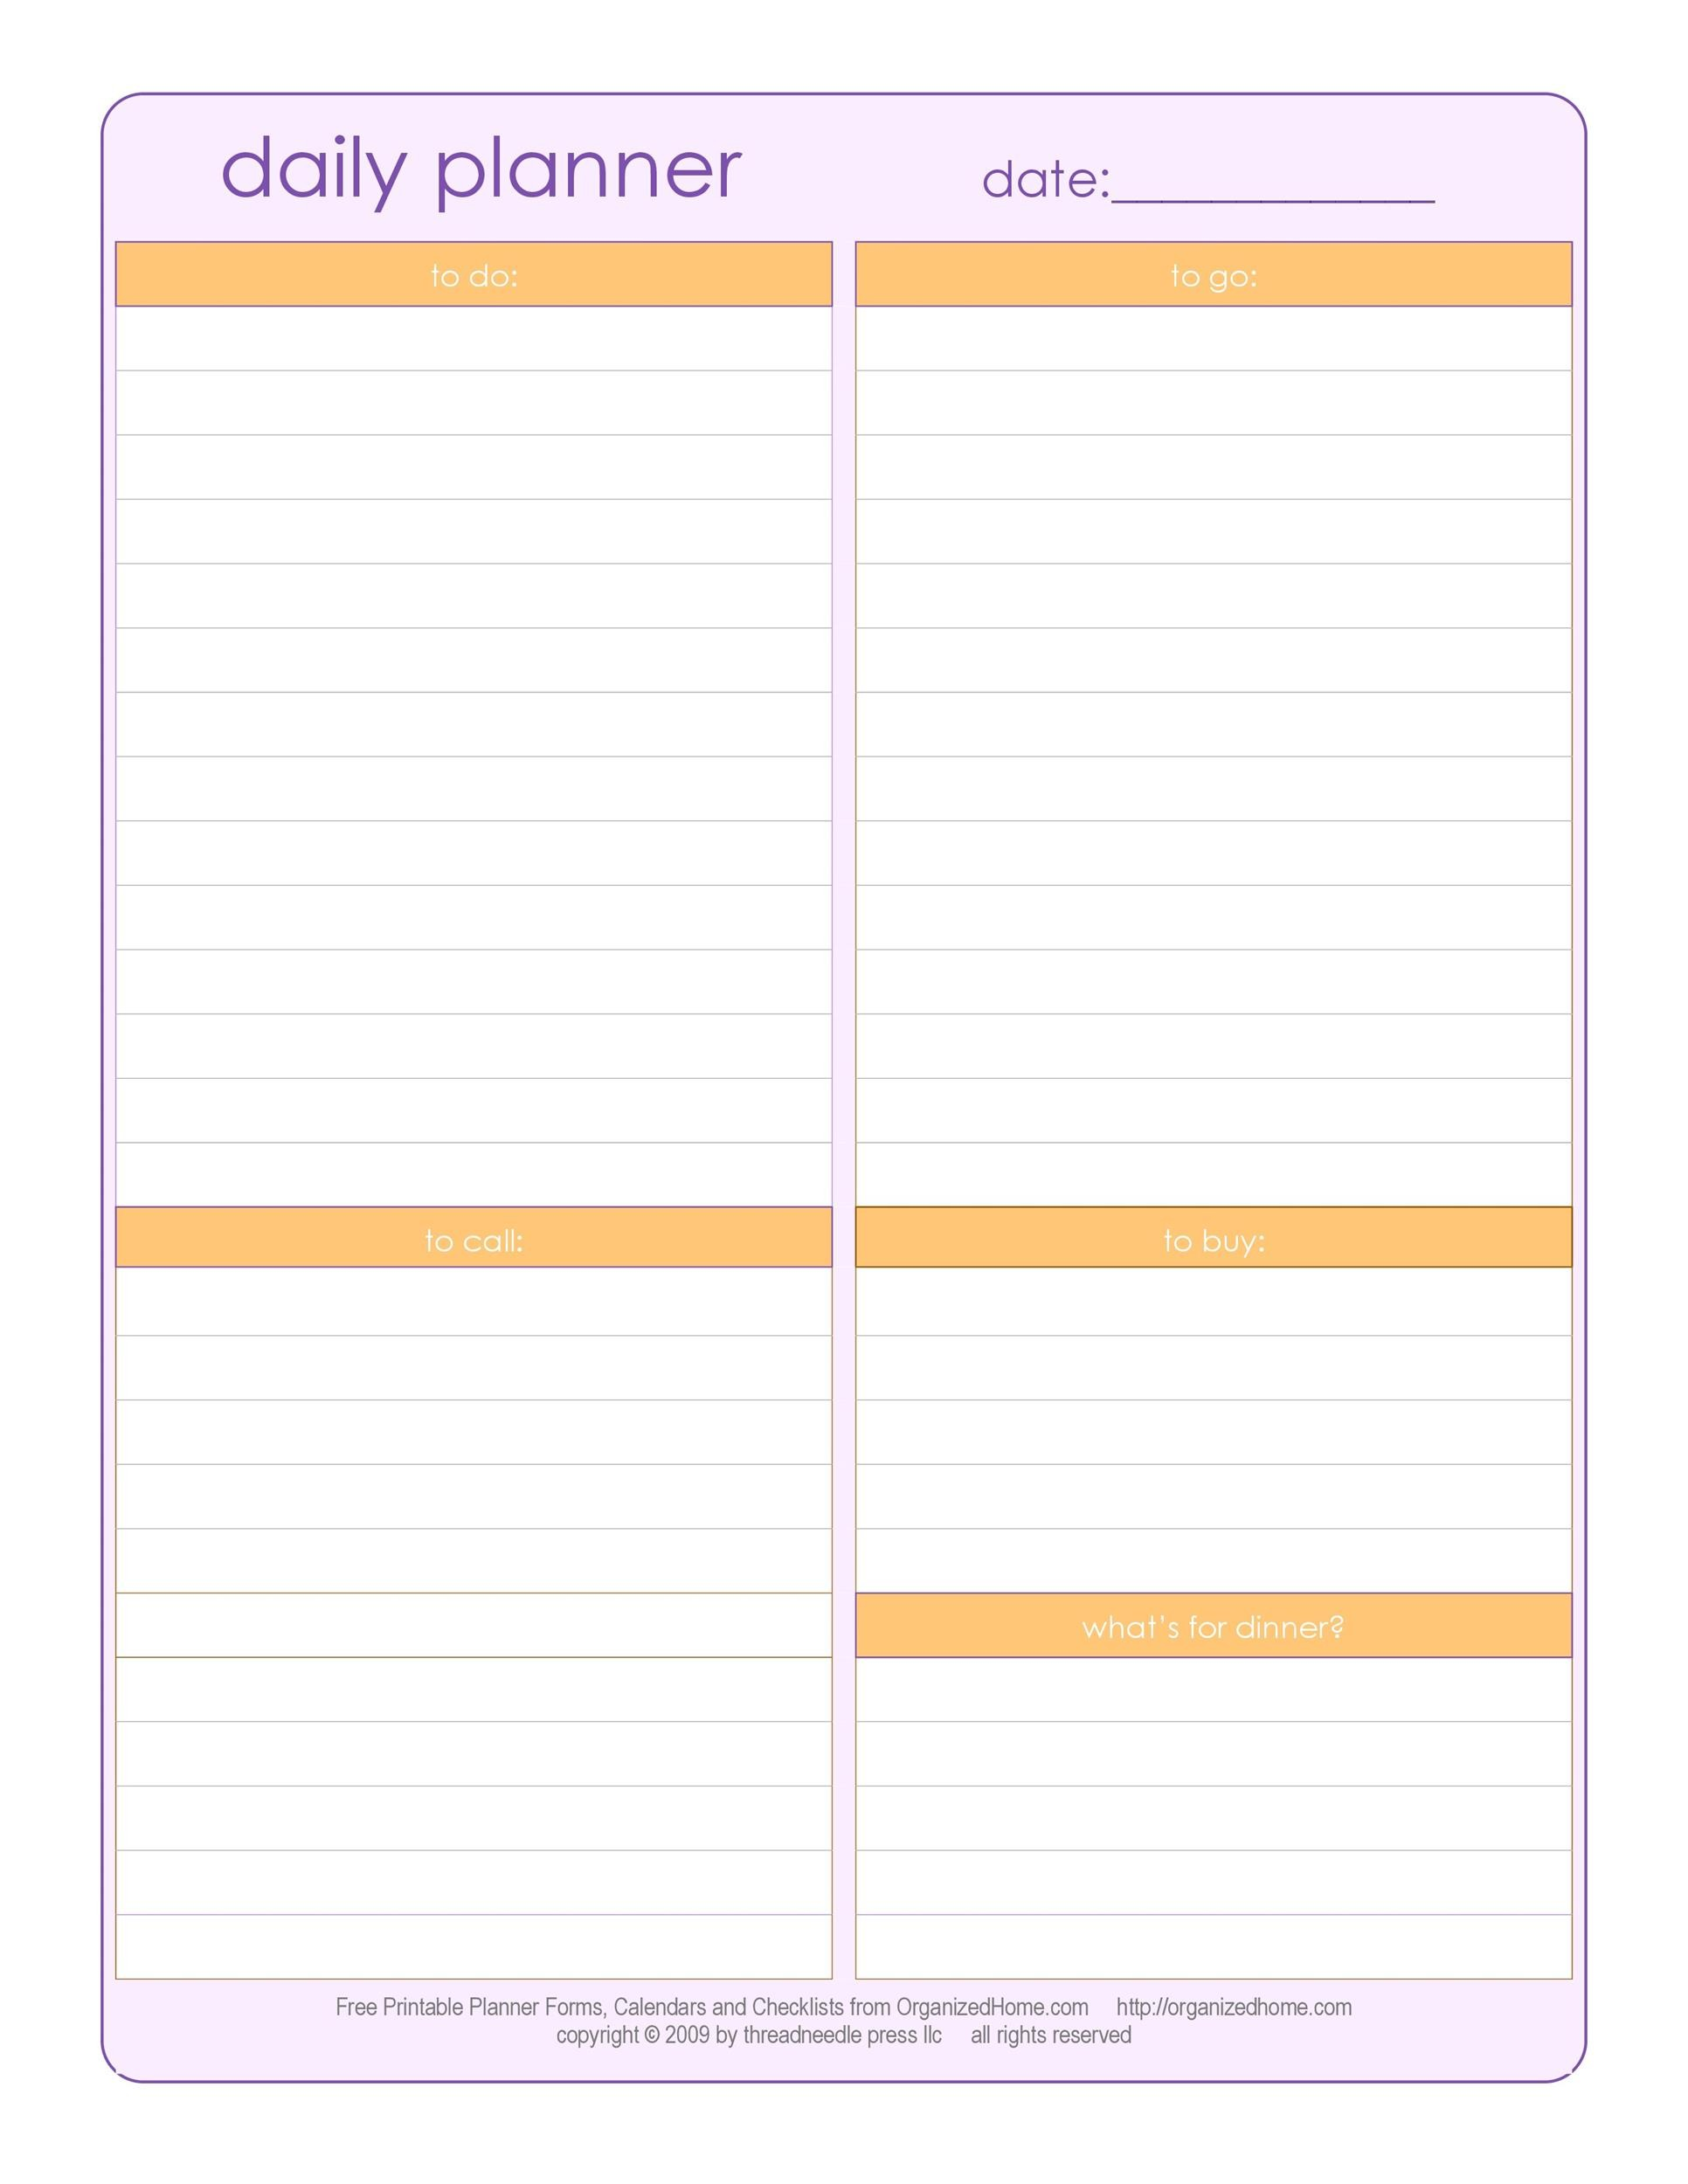 image regarding Daily Planner Template referred to as 40+ Printable Day-to-day Planner Templates (Totally free) ᐅ Template Lab